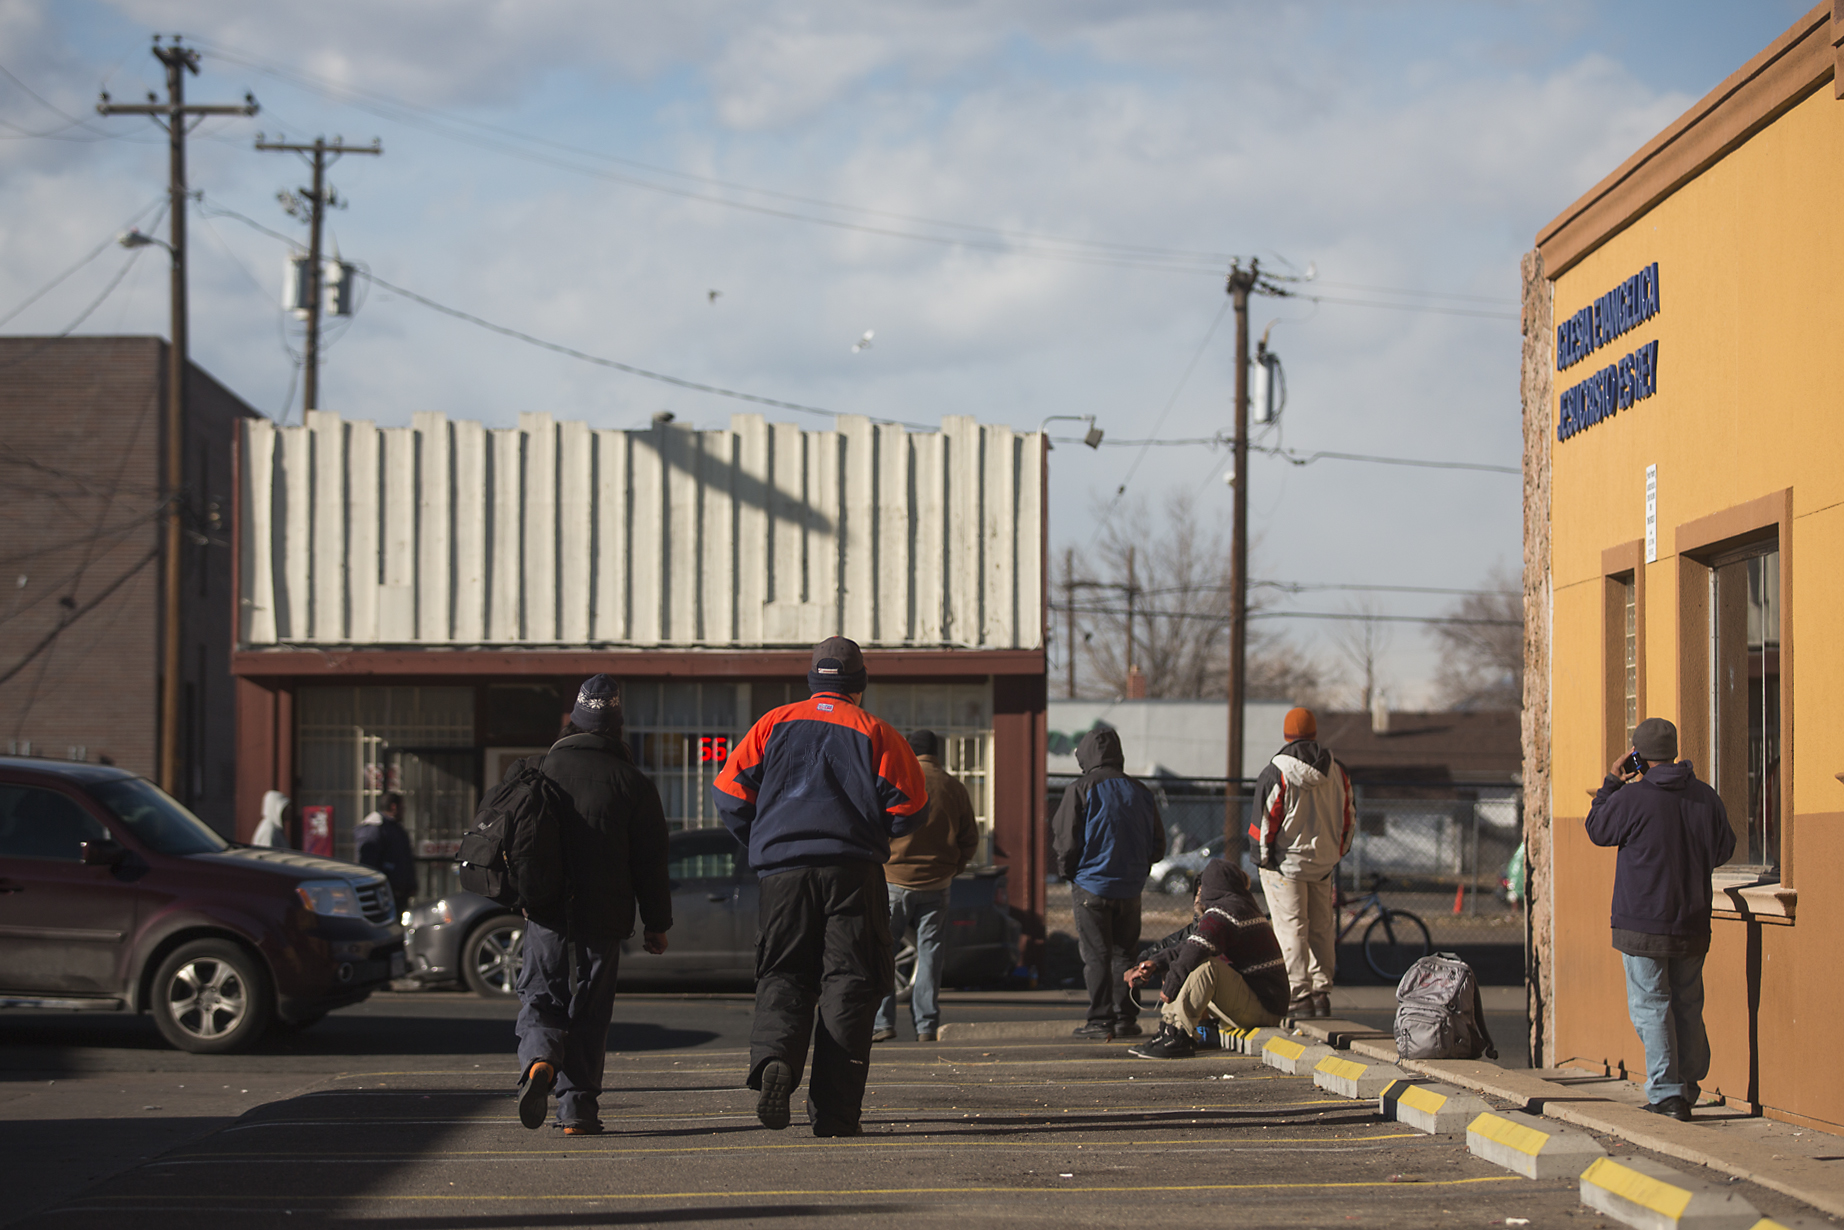 City Moves Forward With Proposed Building To Serve Day Laborers Near